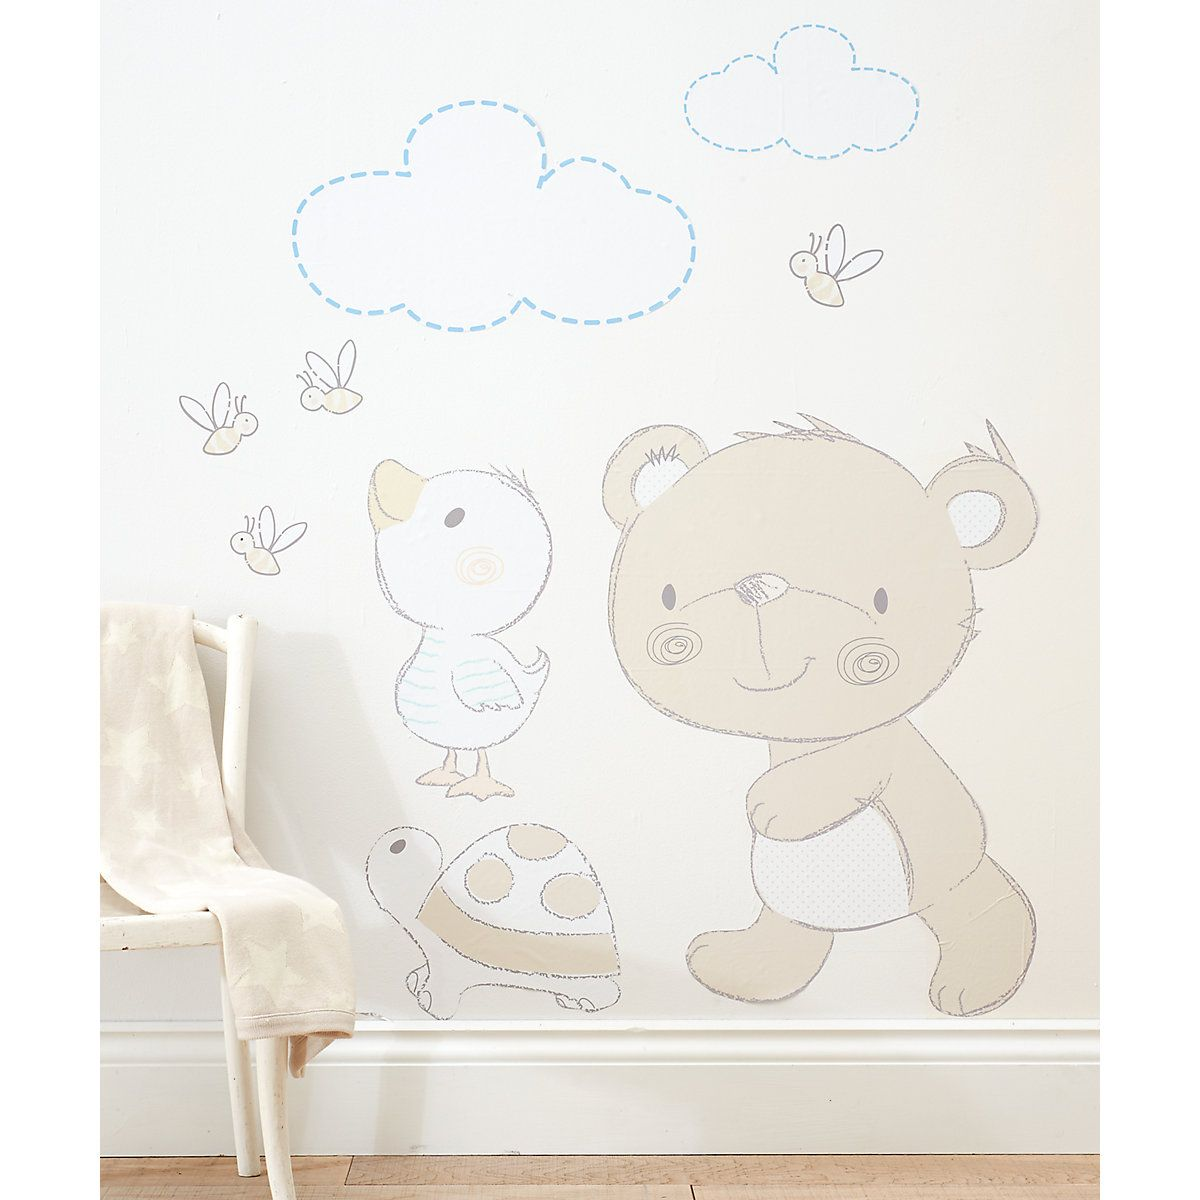 Wall stickers wall art from the mothercare wall stickers wall wall stickers wall art from the mothercare wall stickers wall art range online amipublicfo Images